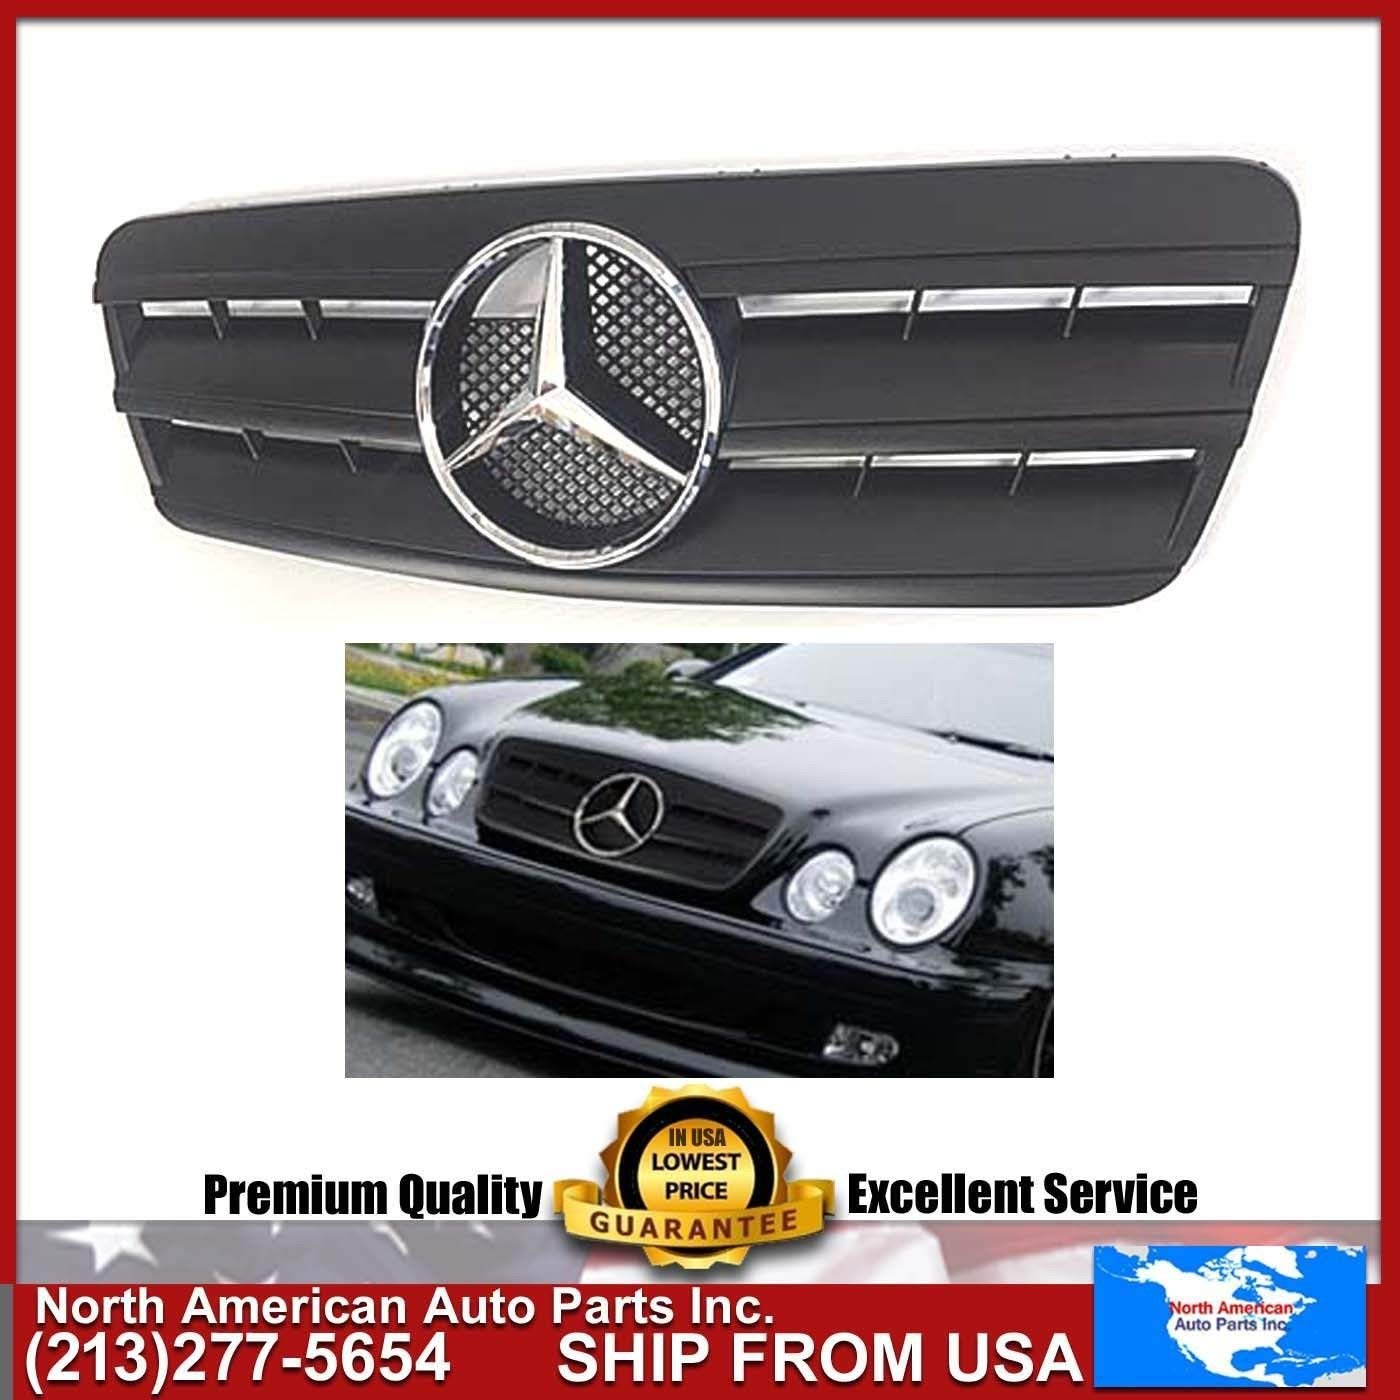 Cheap Mercedes Benz Amg Clk Find Deals On Ml350 2005 Parts Get Quotations 98 02 W208 Matte Black Grille With Chrome Star Clk320 Clk430 Clk55